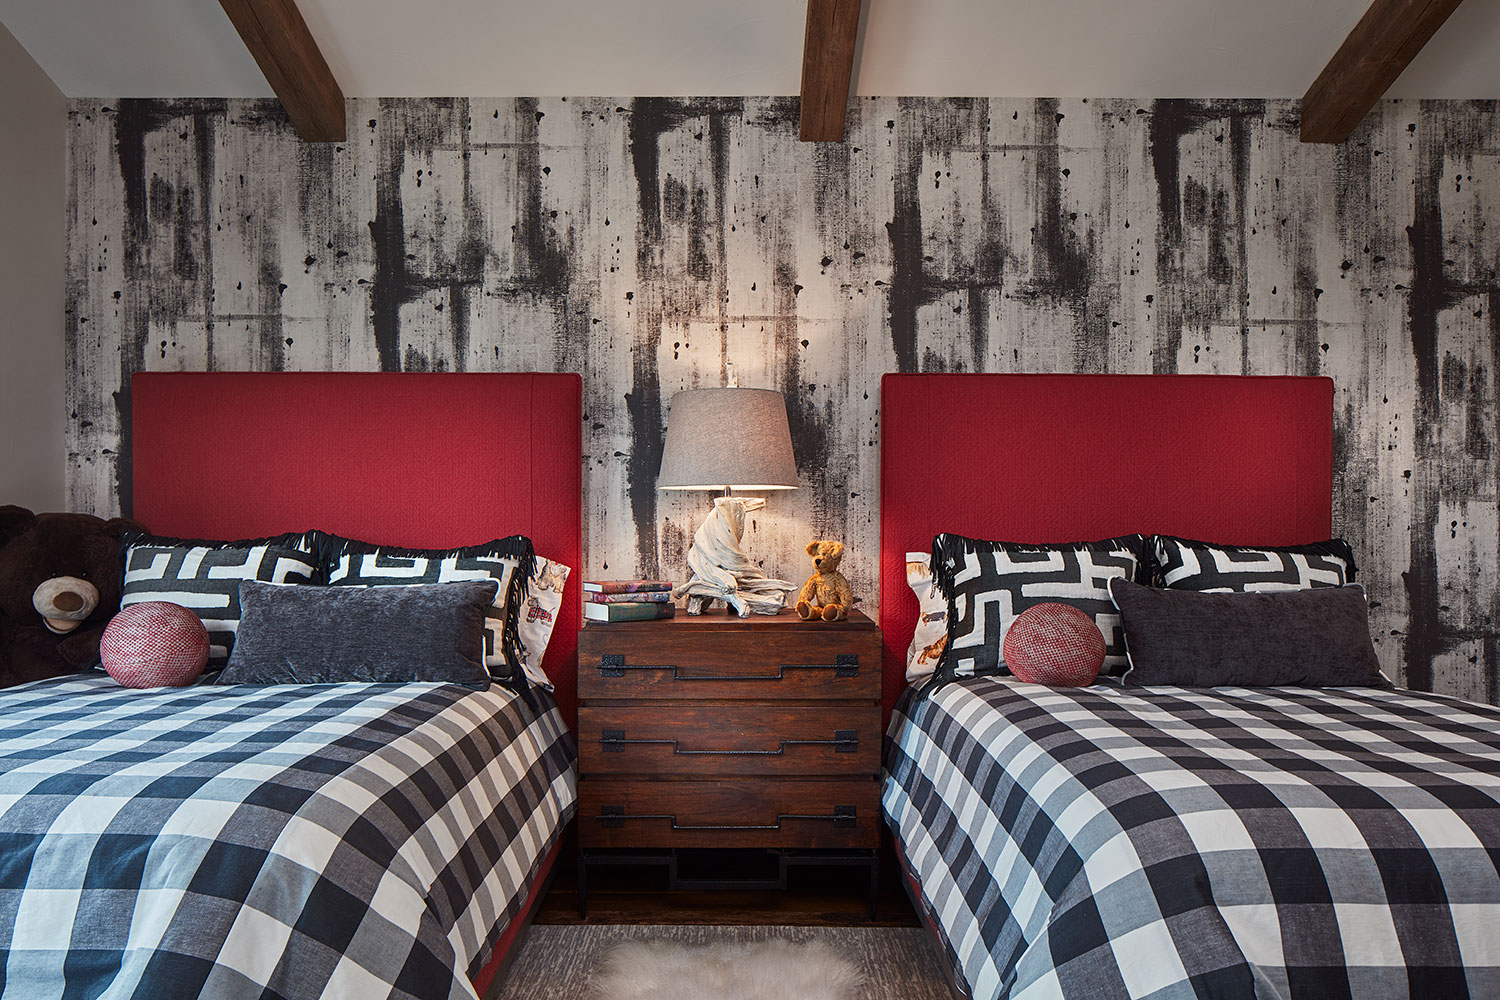 twin beds with red headboard and black and white plaid bedspread